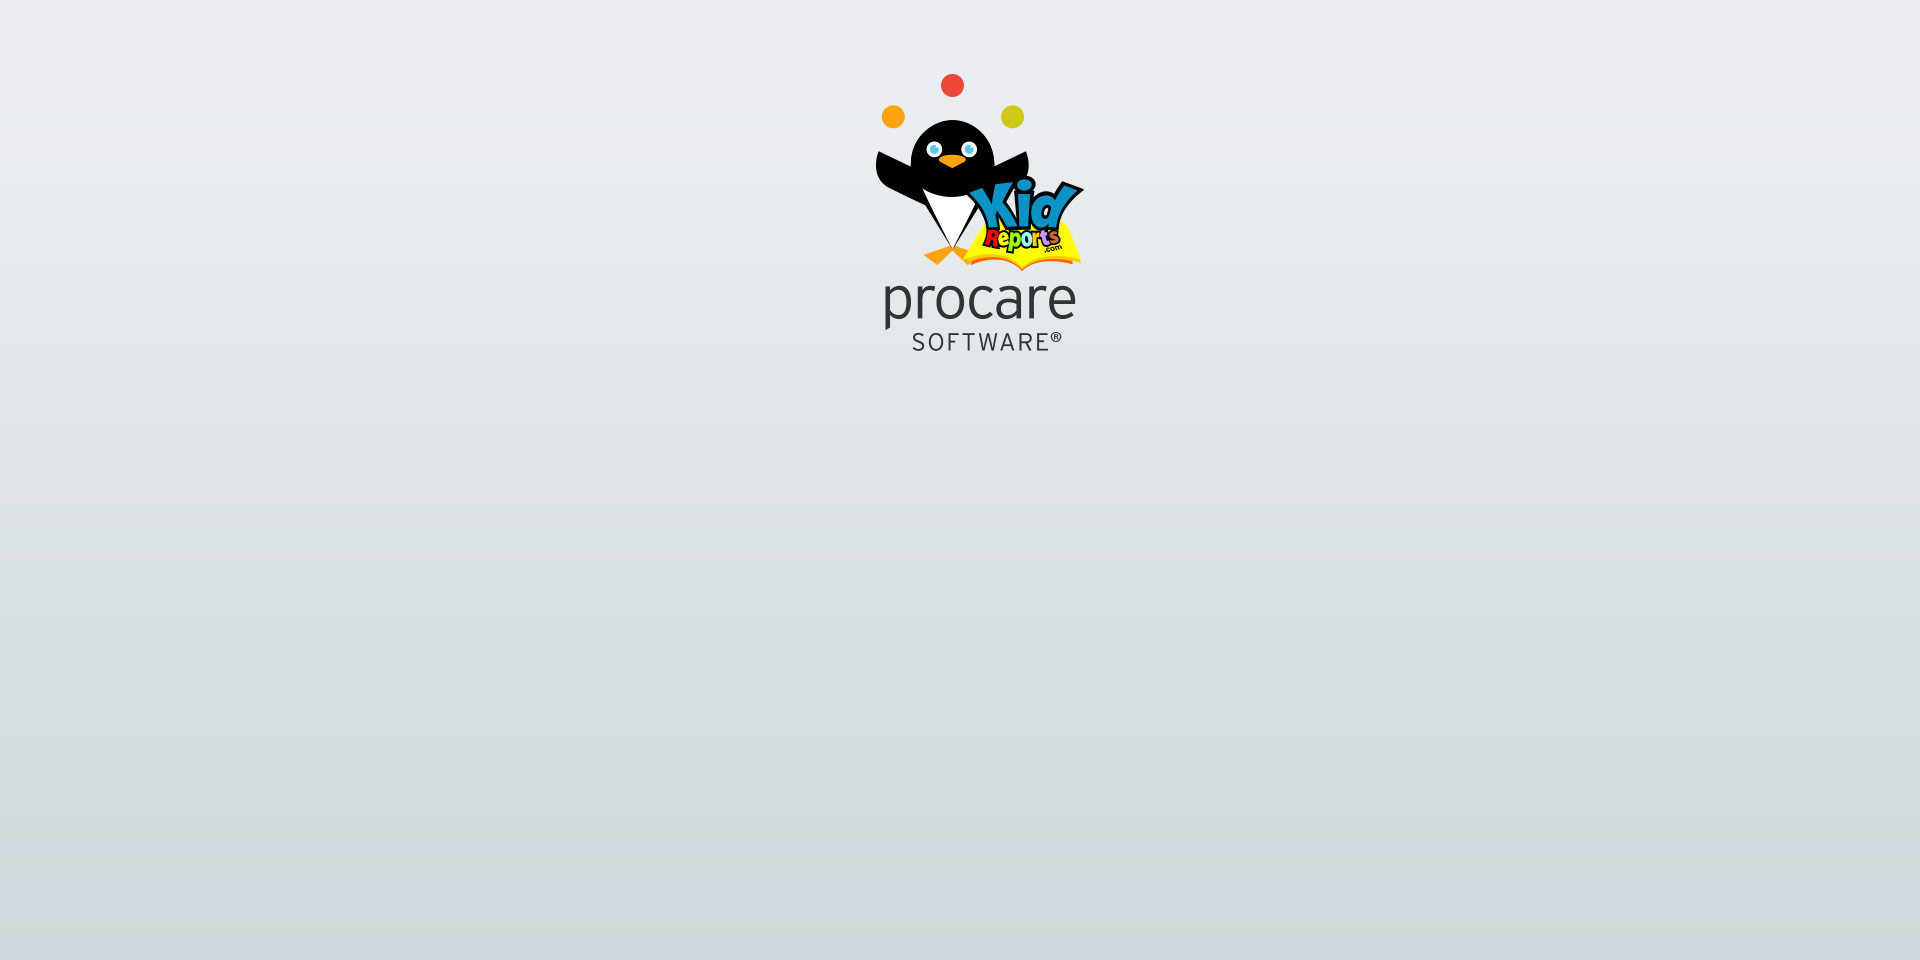 Procare Software and KidReports Announce Strategic Partnership